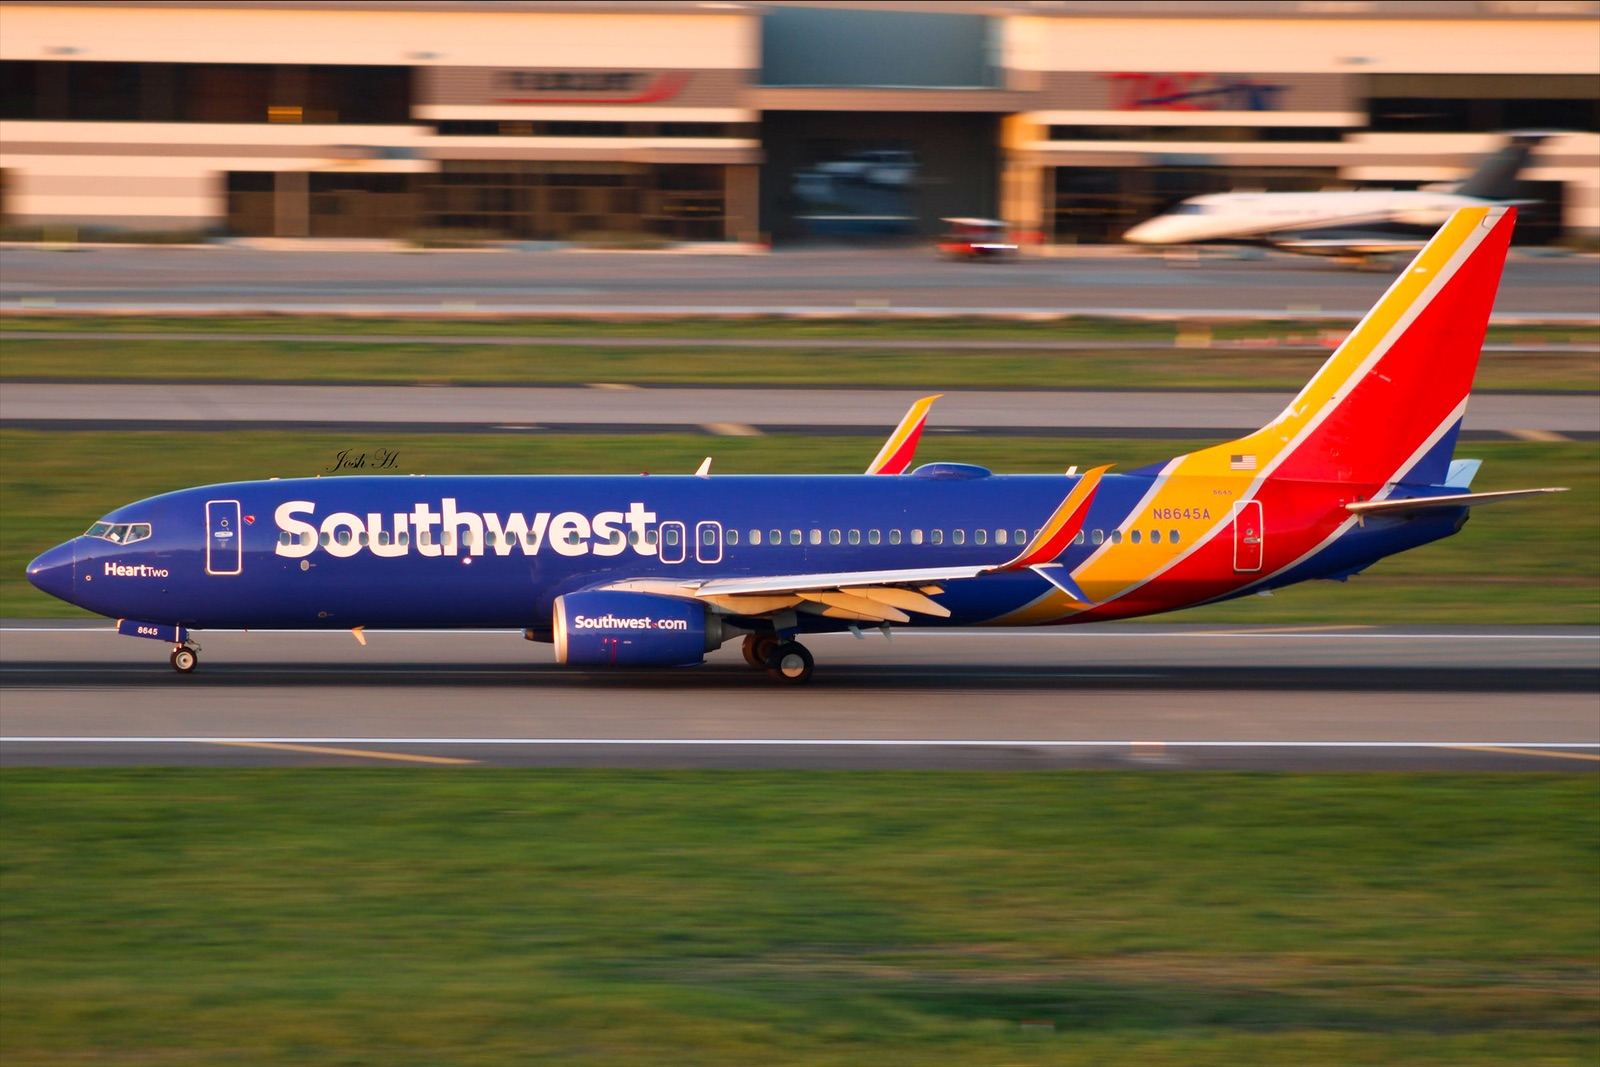 Photo of N8645A - Southwest Airlines Boeing 737-800 at DAL